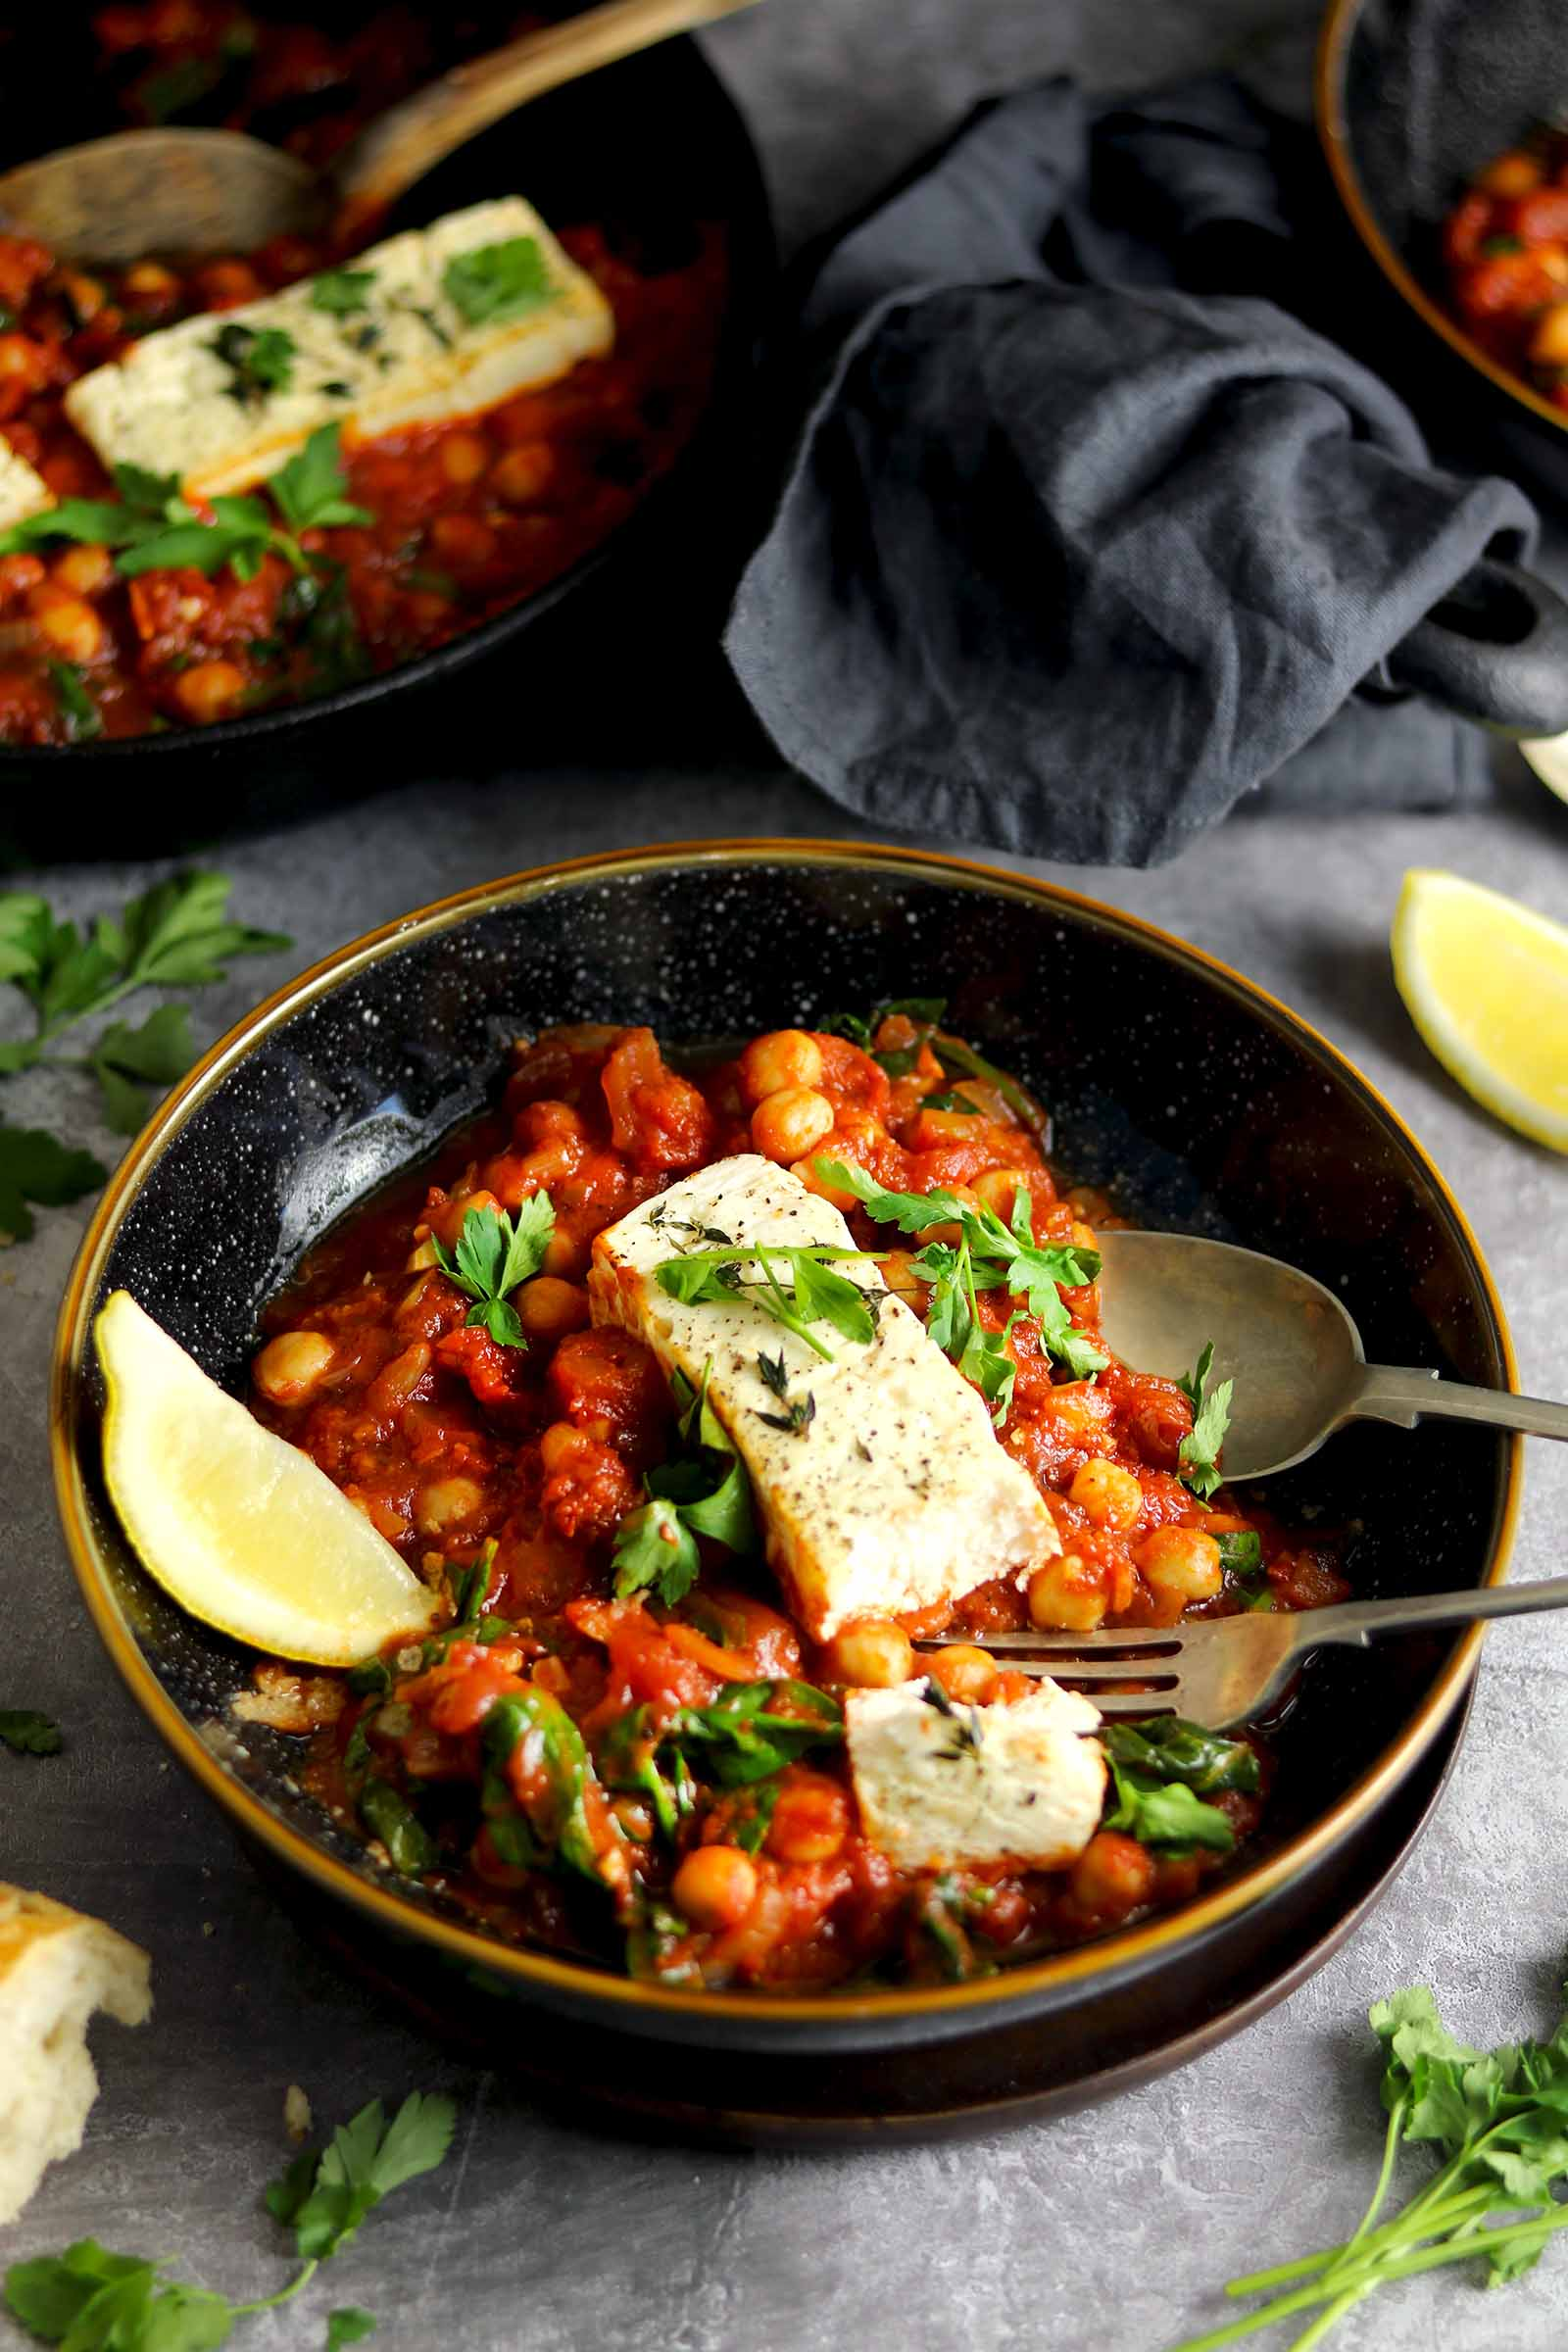 Baked Feta with Chickpeas - in bowl side on